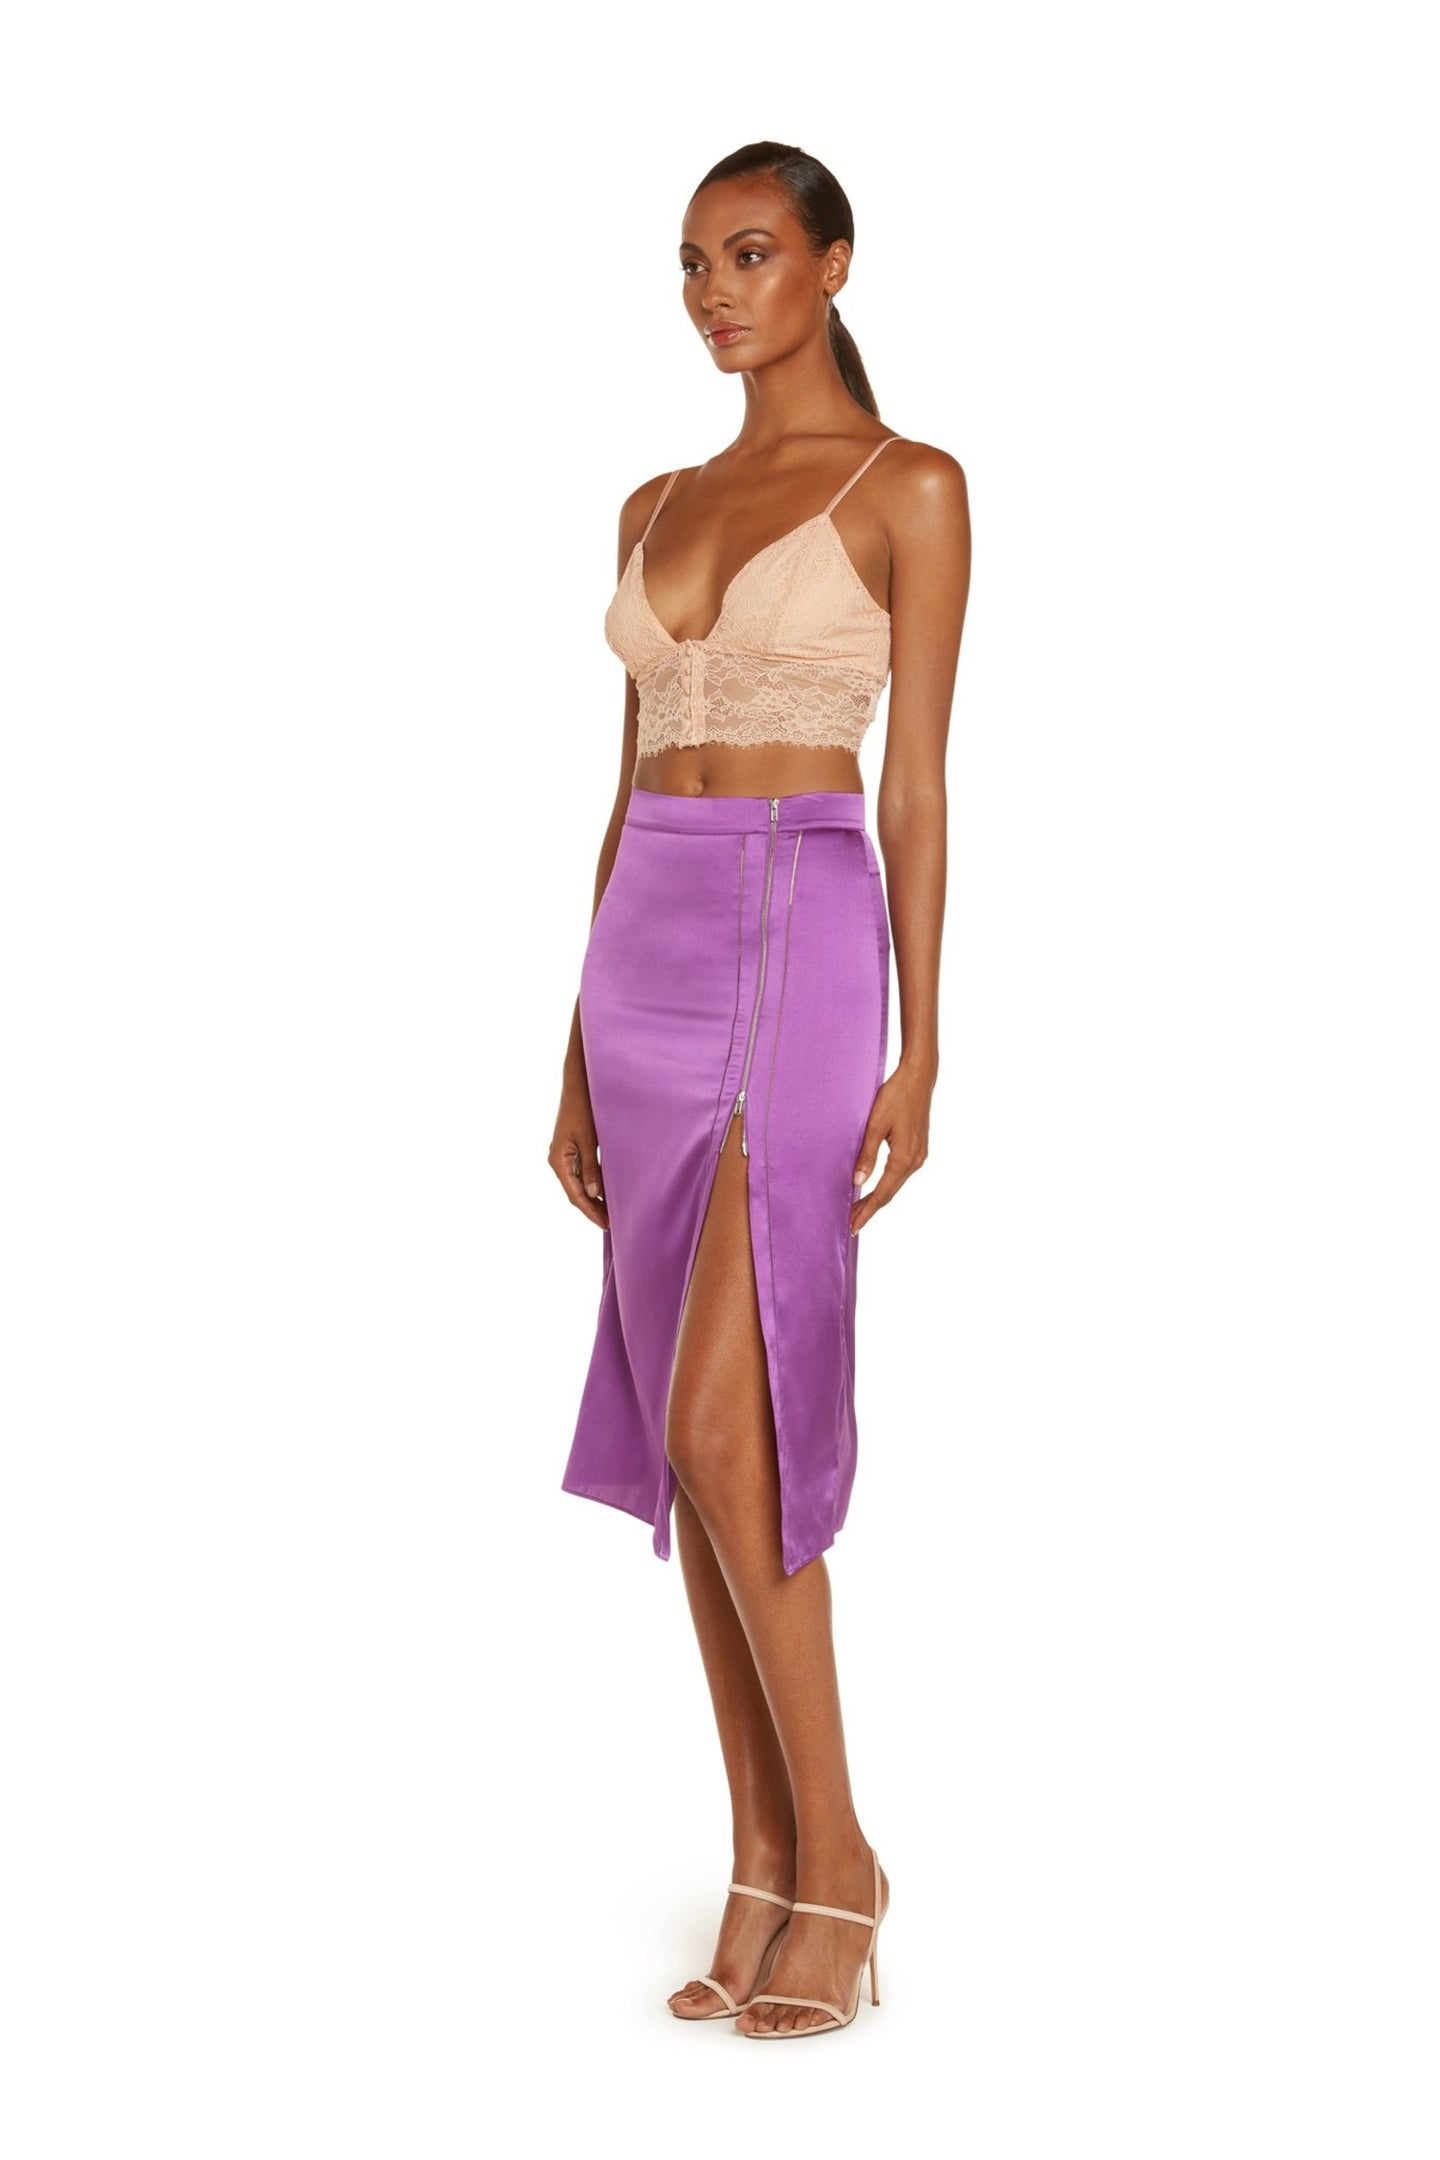 Serena Cropped Cami In Blush Stretch Lace With Adjustable Silk Satin Straps